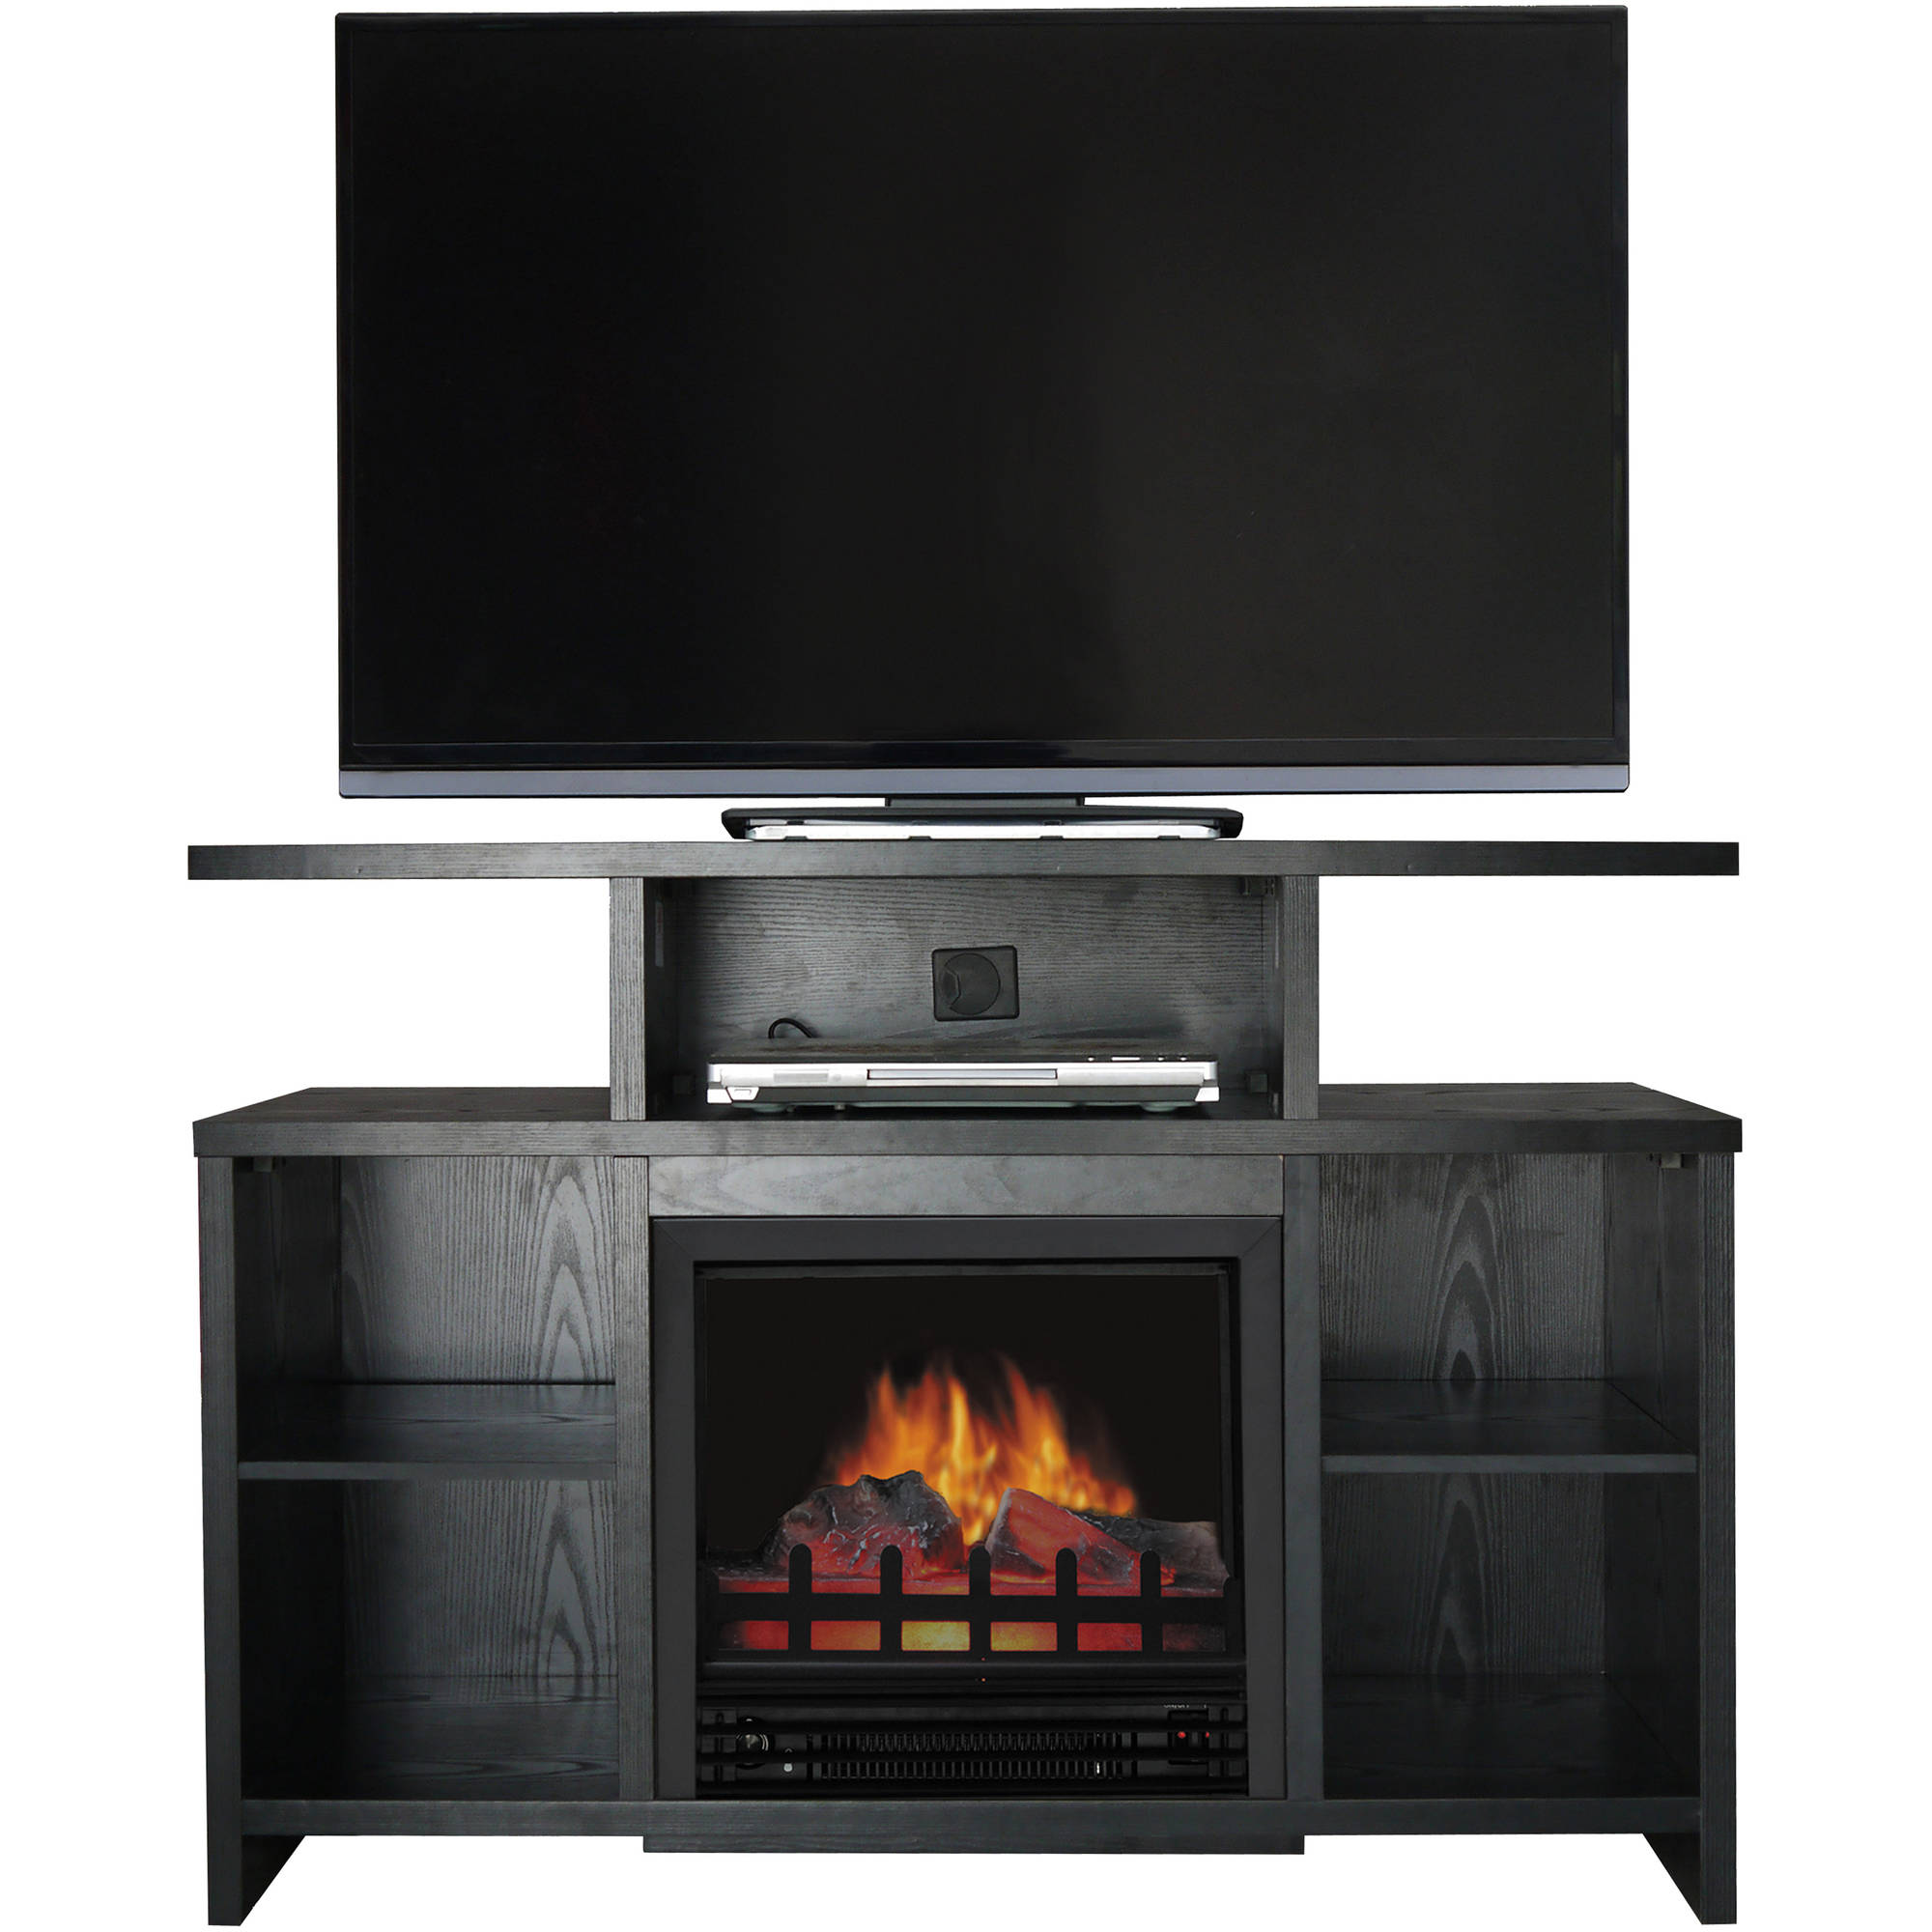 "Decor Flame Media Electric Fireplace for TVs up to 50"", Black"